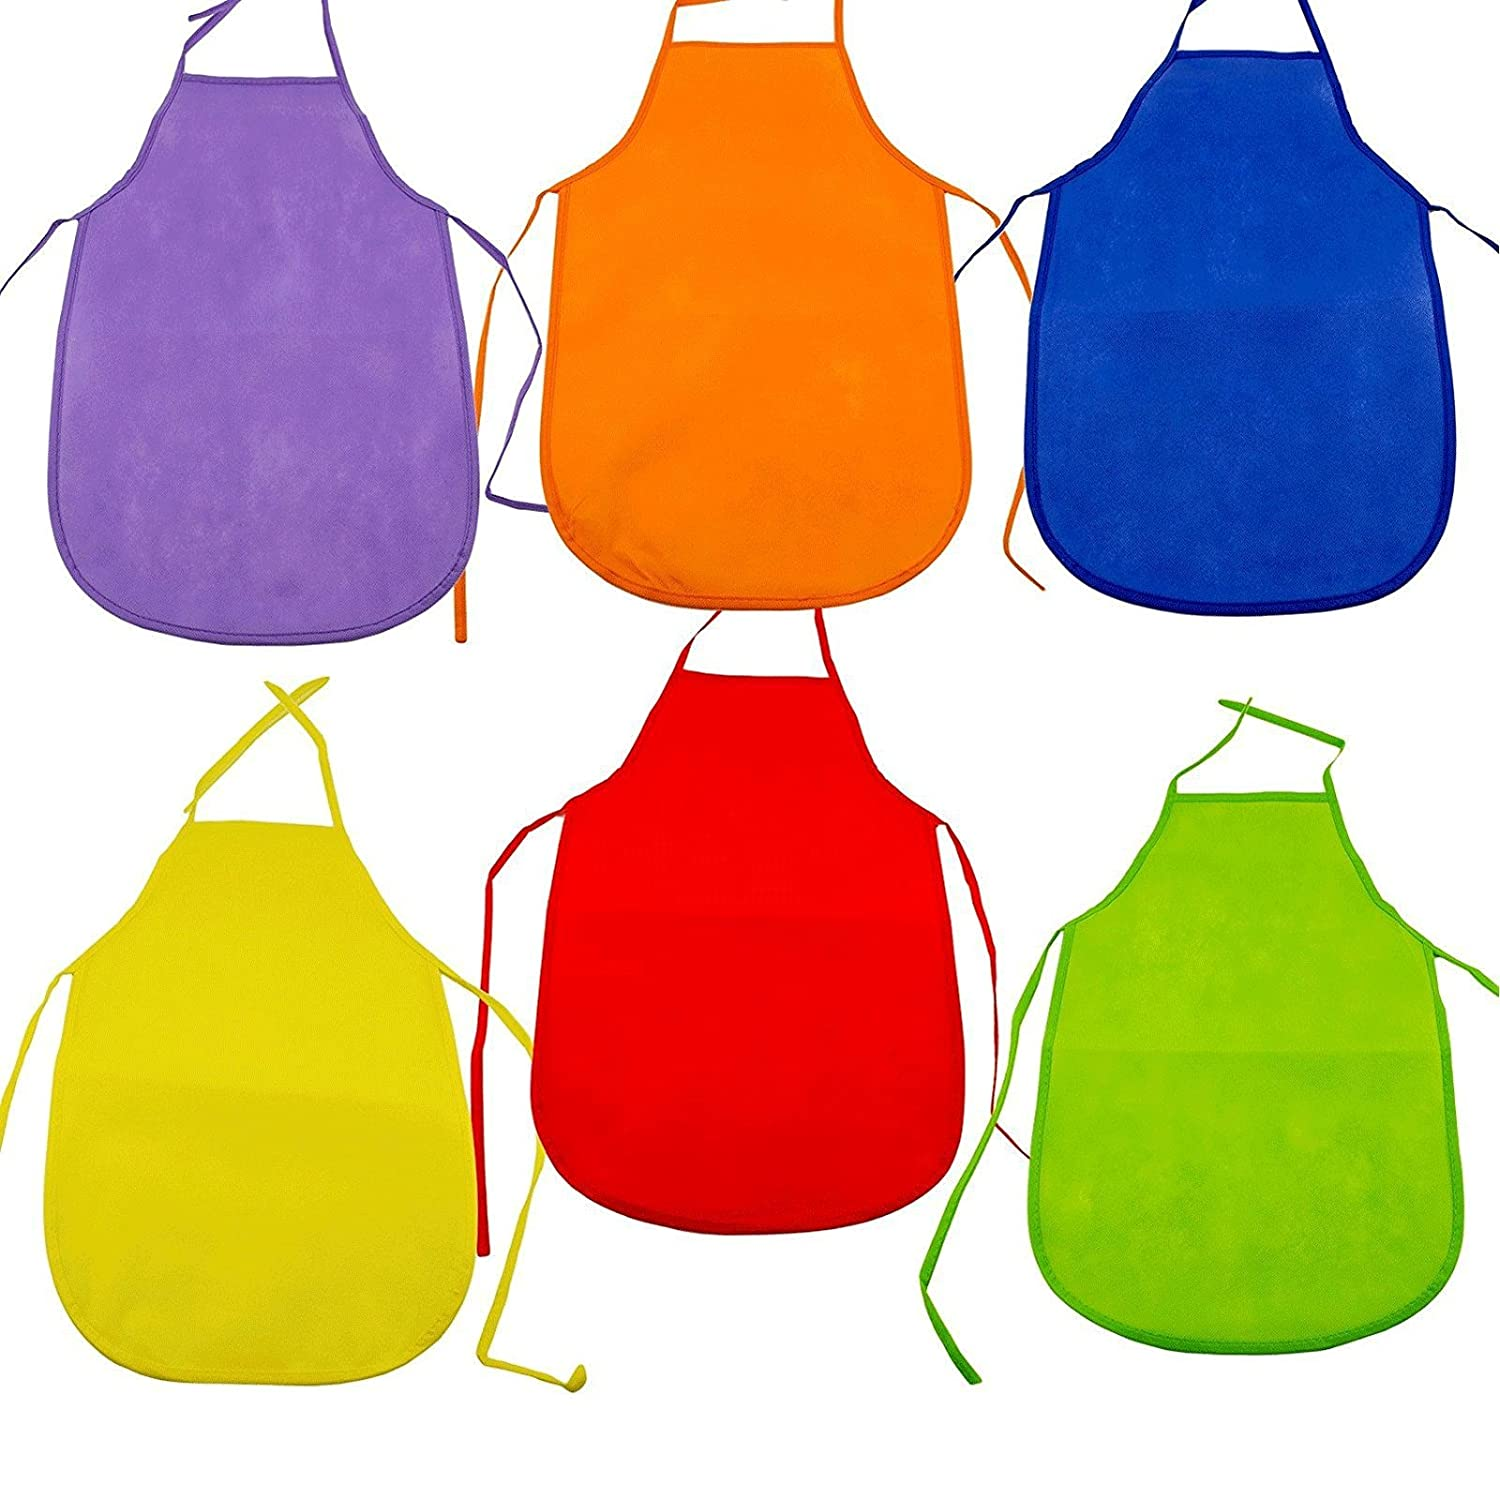 Adorox 12 Pack Assorted Children's Multicolored Aprons smock Art & Craft Painting Cooking Classroom set of 12 COMINHKPR56526